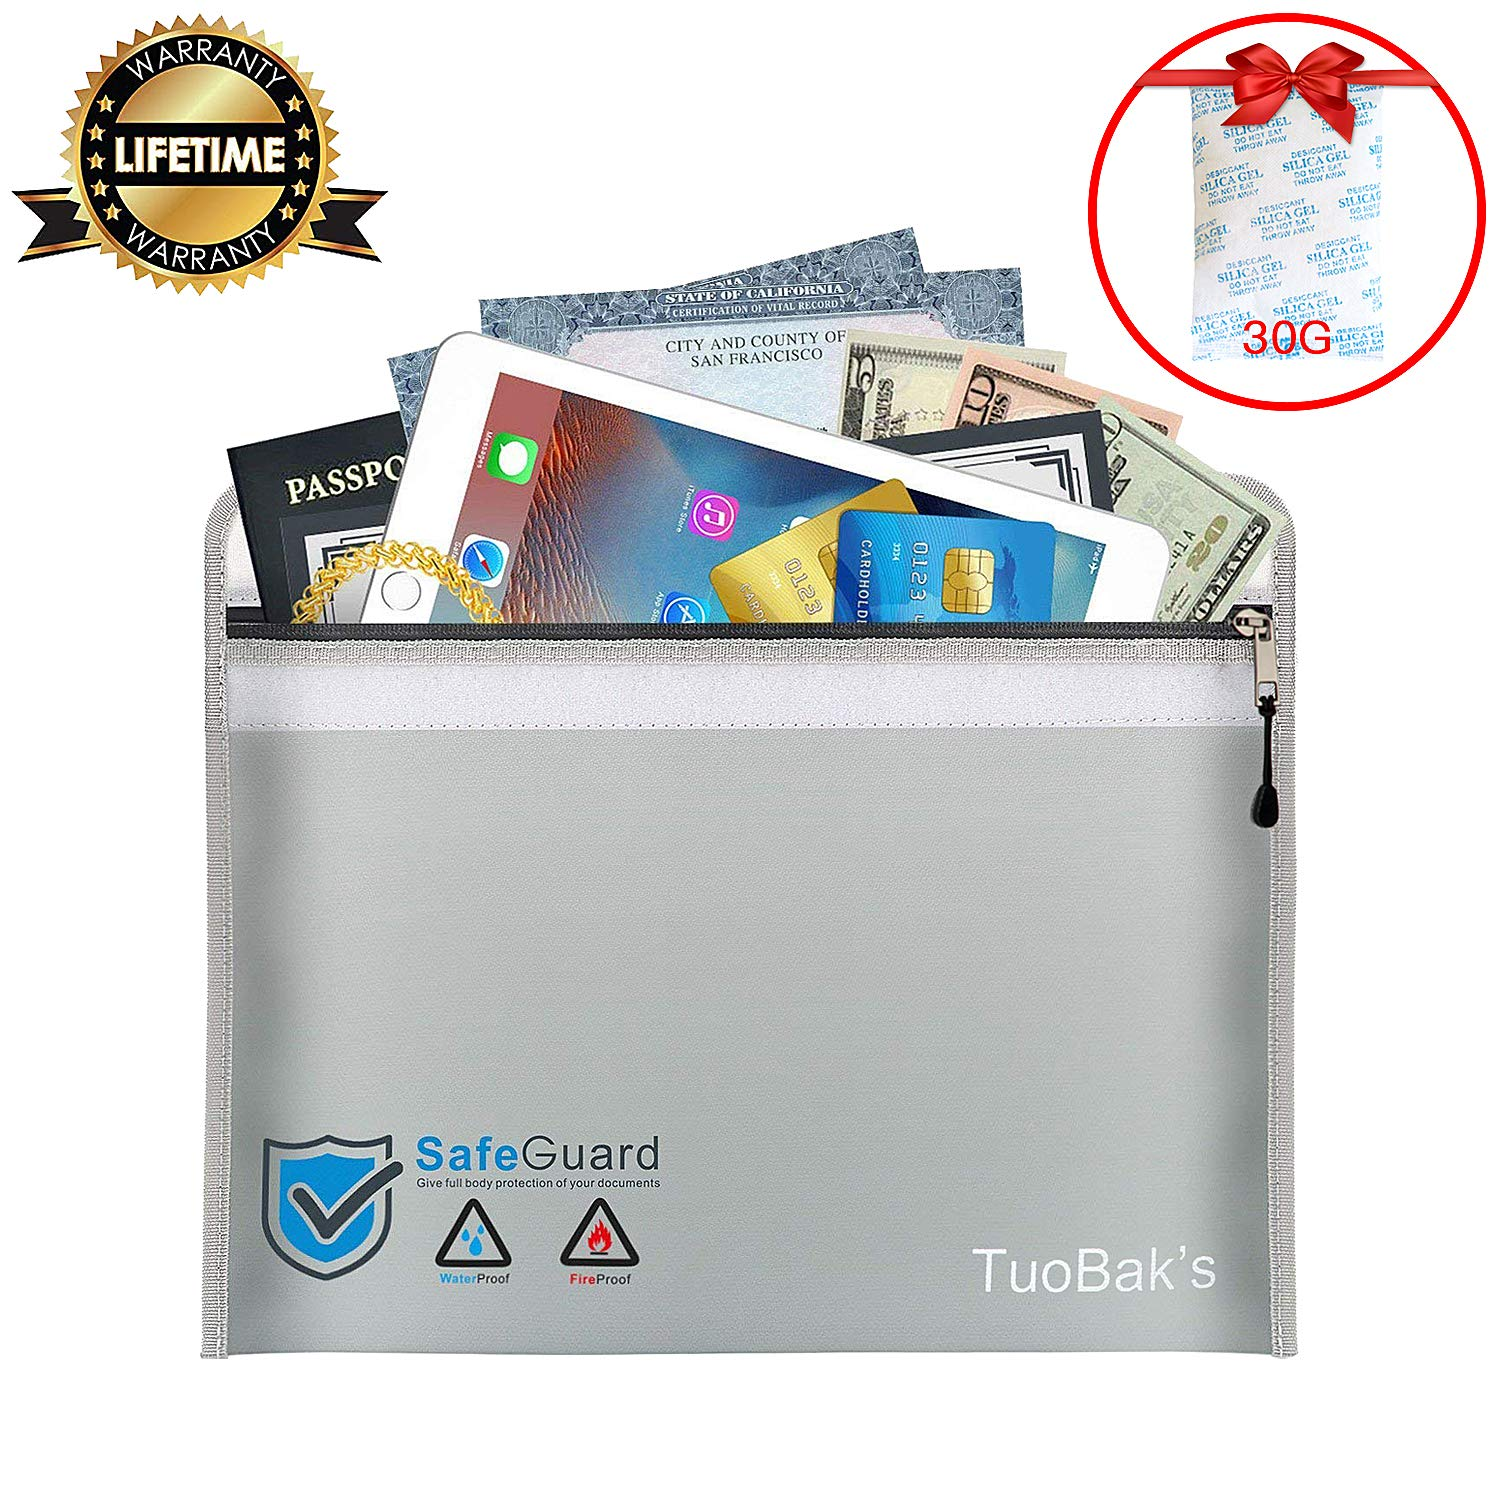 Fireproof Document Bag | fireproof safe Storage Non-Itchy Upgraded Silicone Coated Water Resistant Money Bag with Premium Silica Gel Desiccant 30 Gram for Cash Jewellery Passport (15.8' x 11.1') 11812-226735